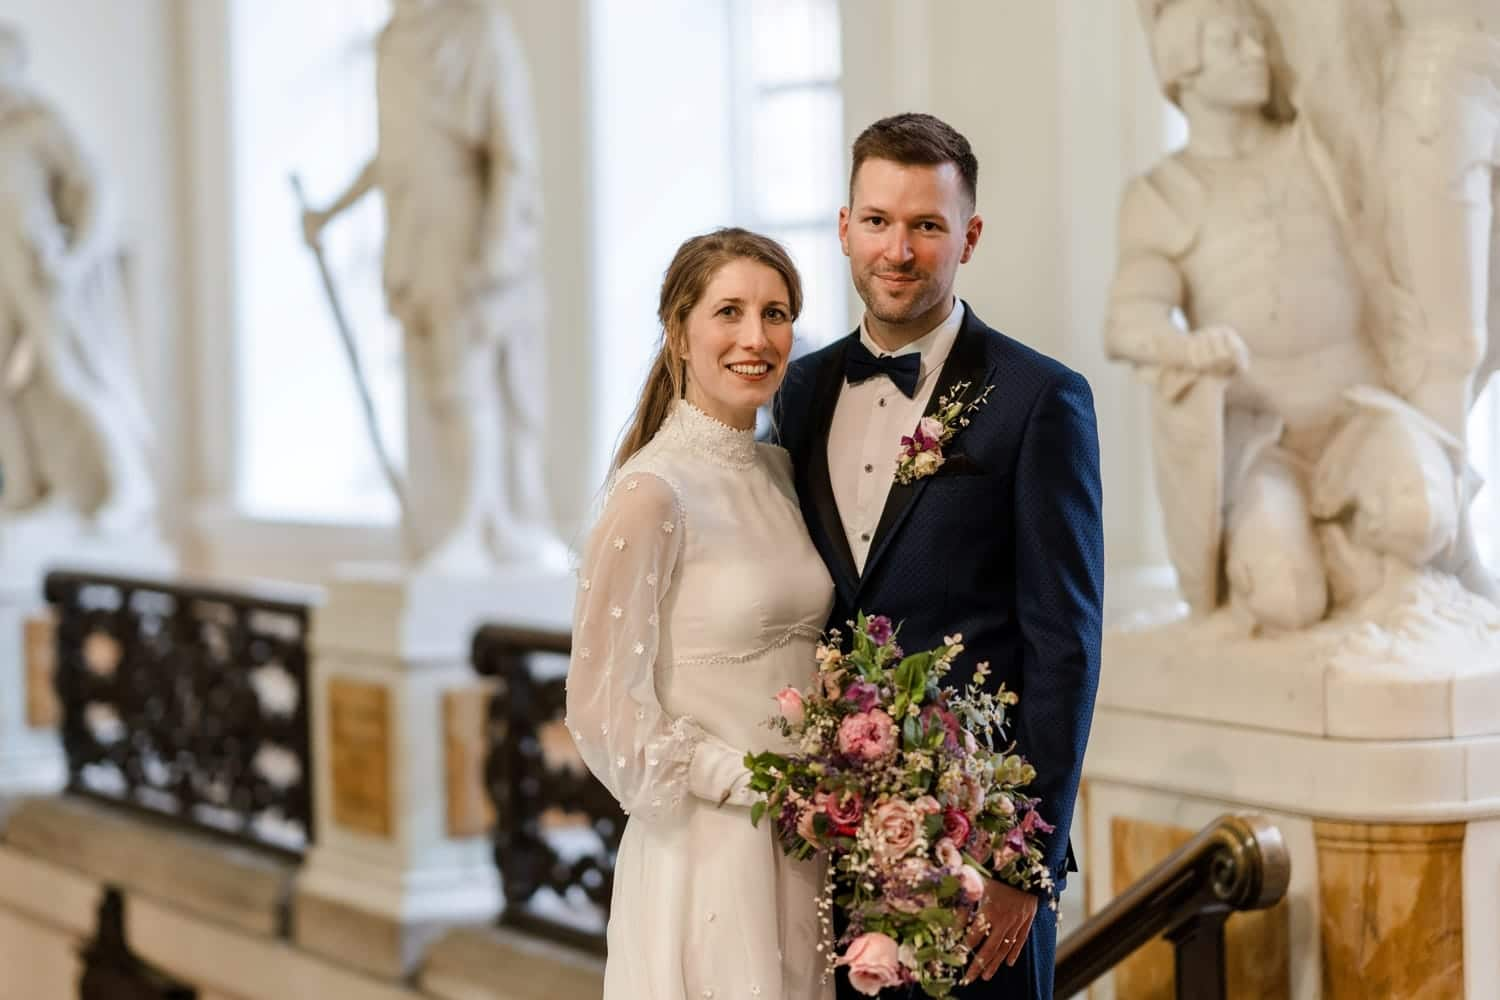 Bride and groom portraits at Cardiff City Hall